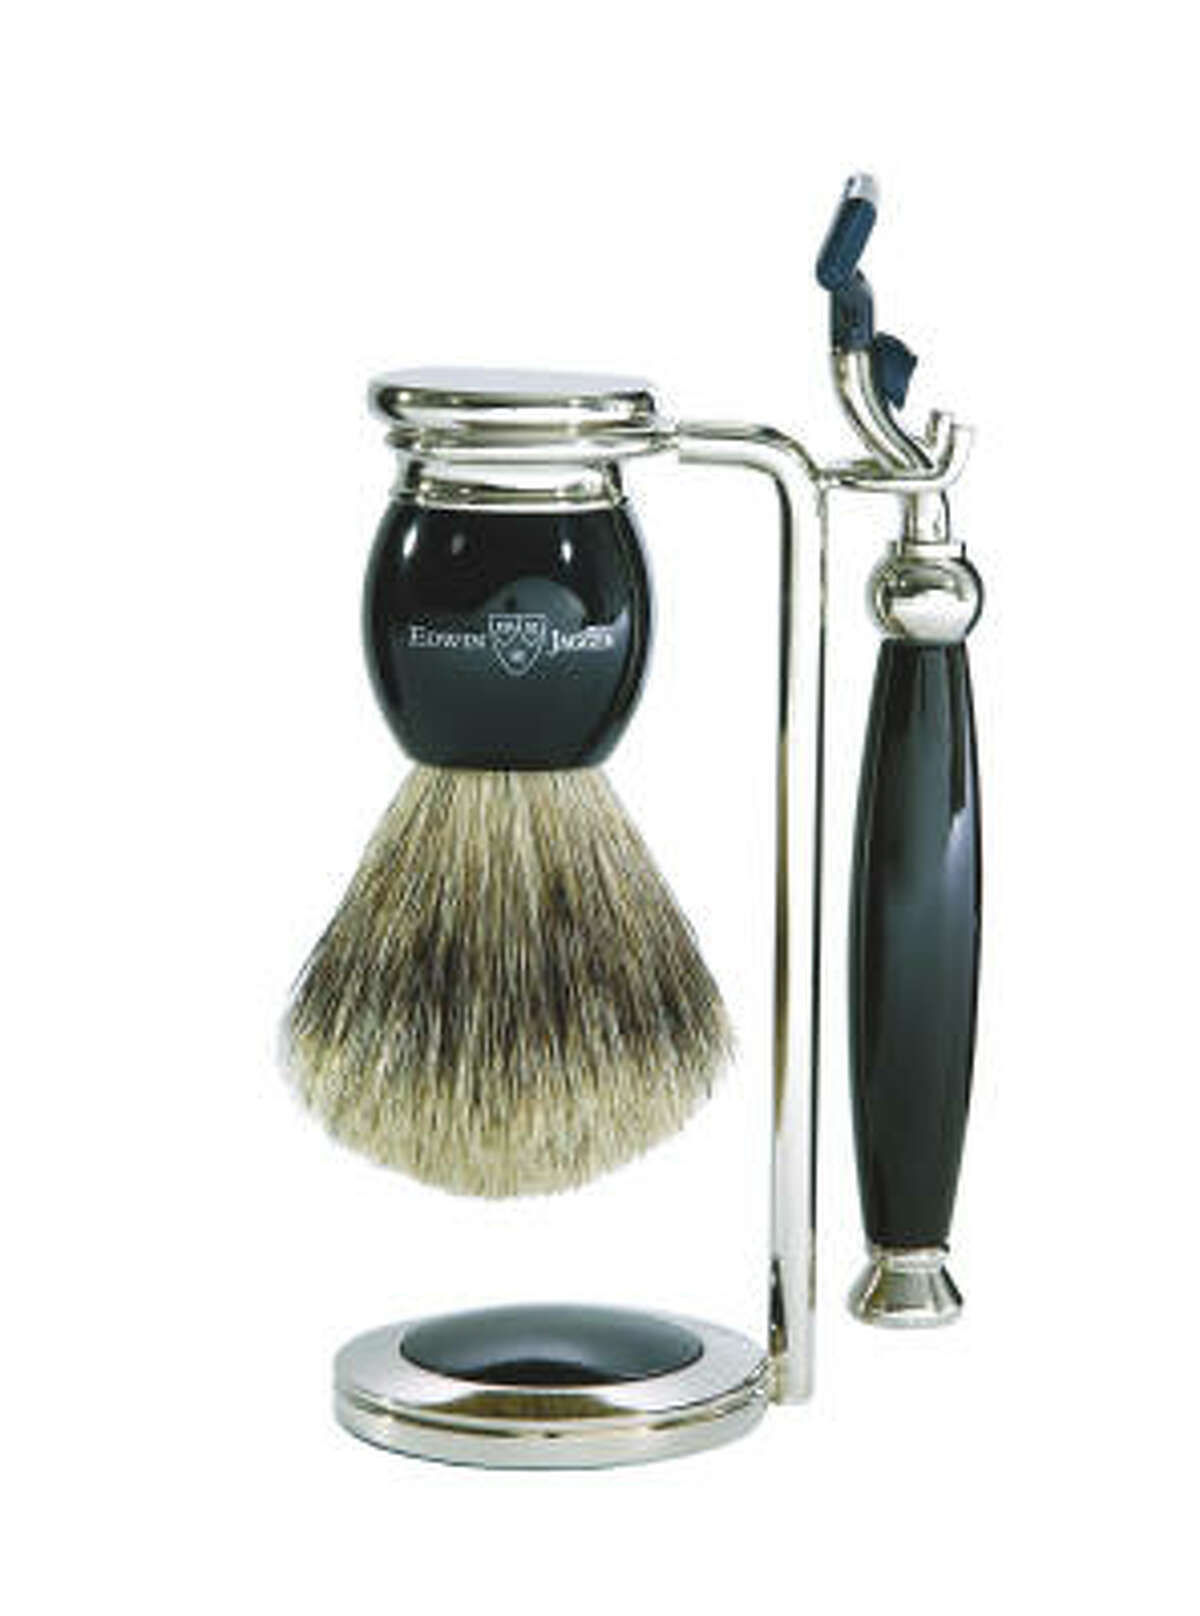 Brush up your shaving routine with Edwin Jagger's three-piece shaving set. The English purveyor of hand-crafted shaving accessories makes a variety of handsome shaving tools including this razor and badger brush; $89 at Amazon.com.